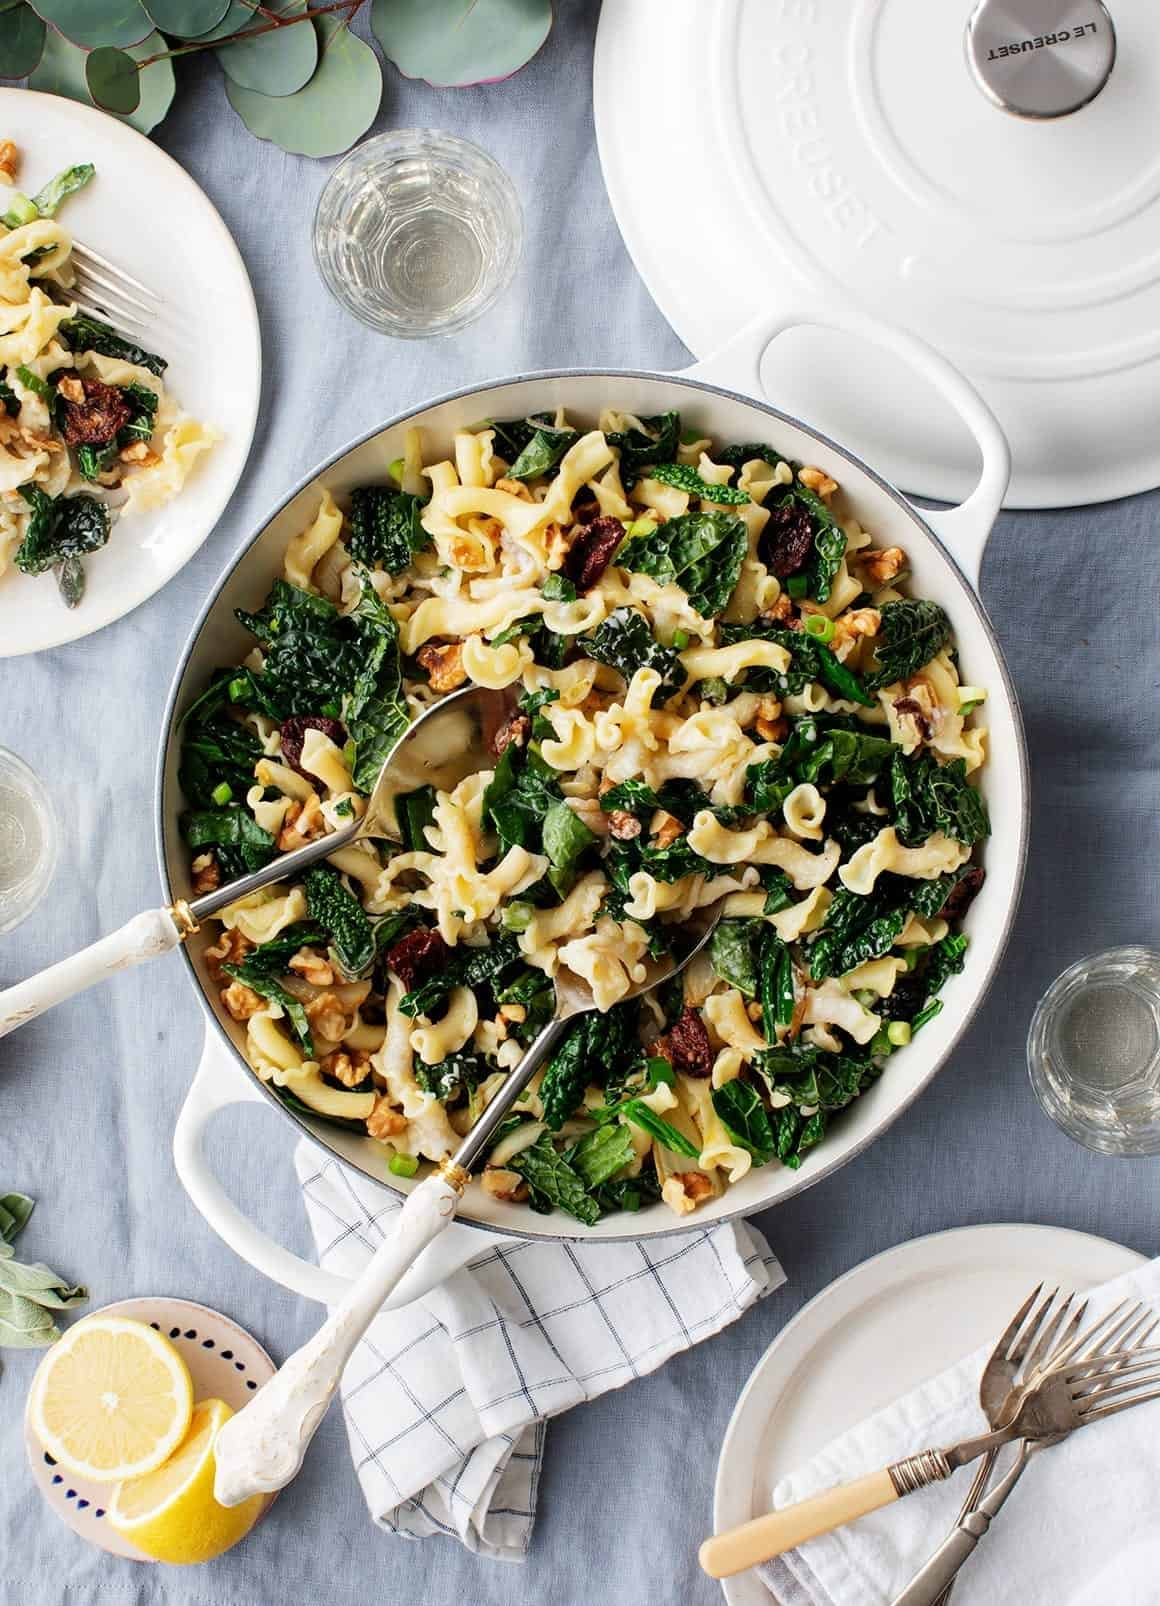 Winter Fennel, Sage, and Kale Pasta for Valentine's Day